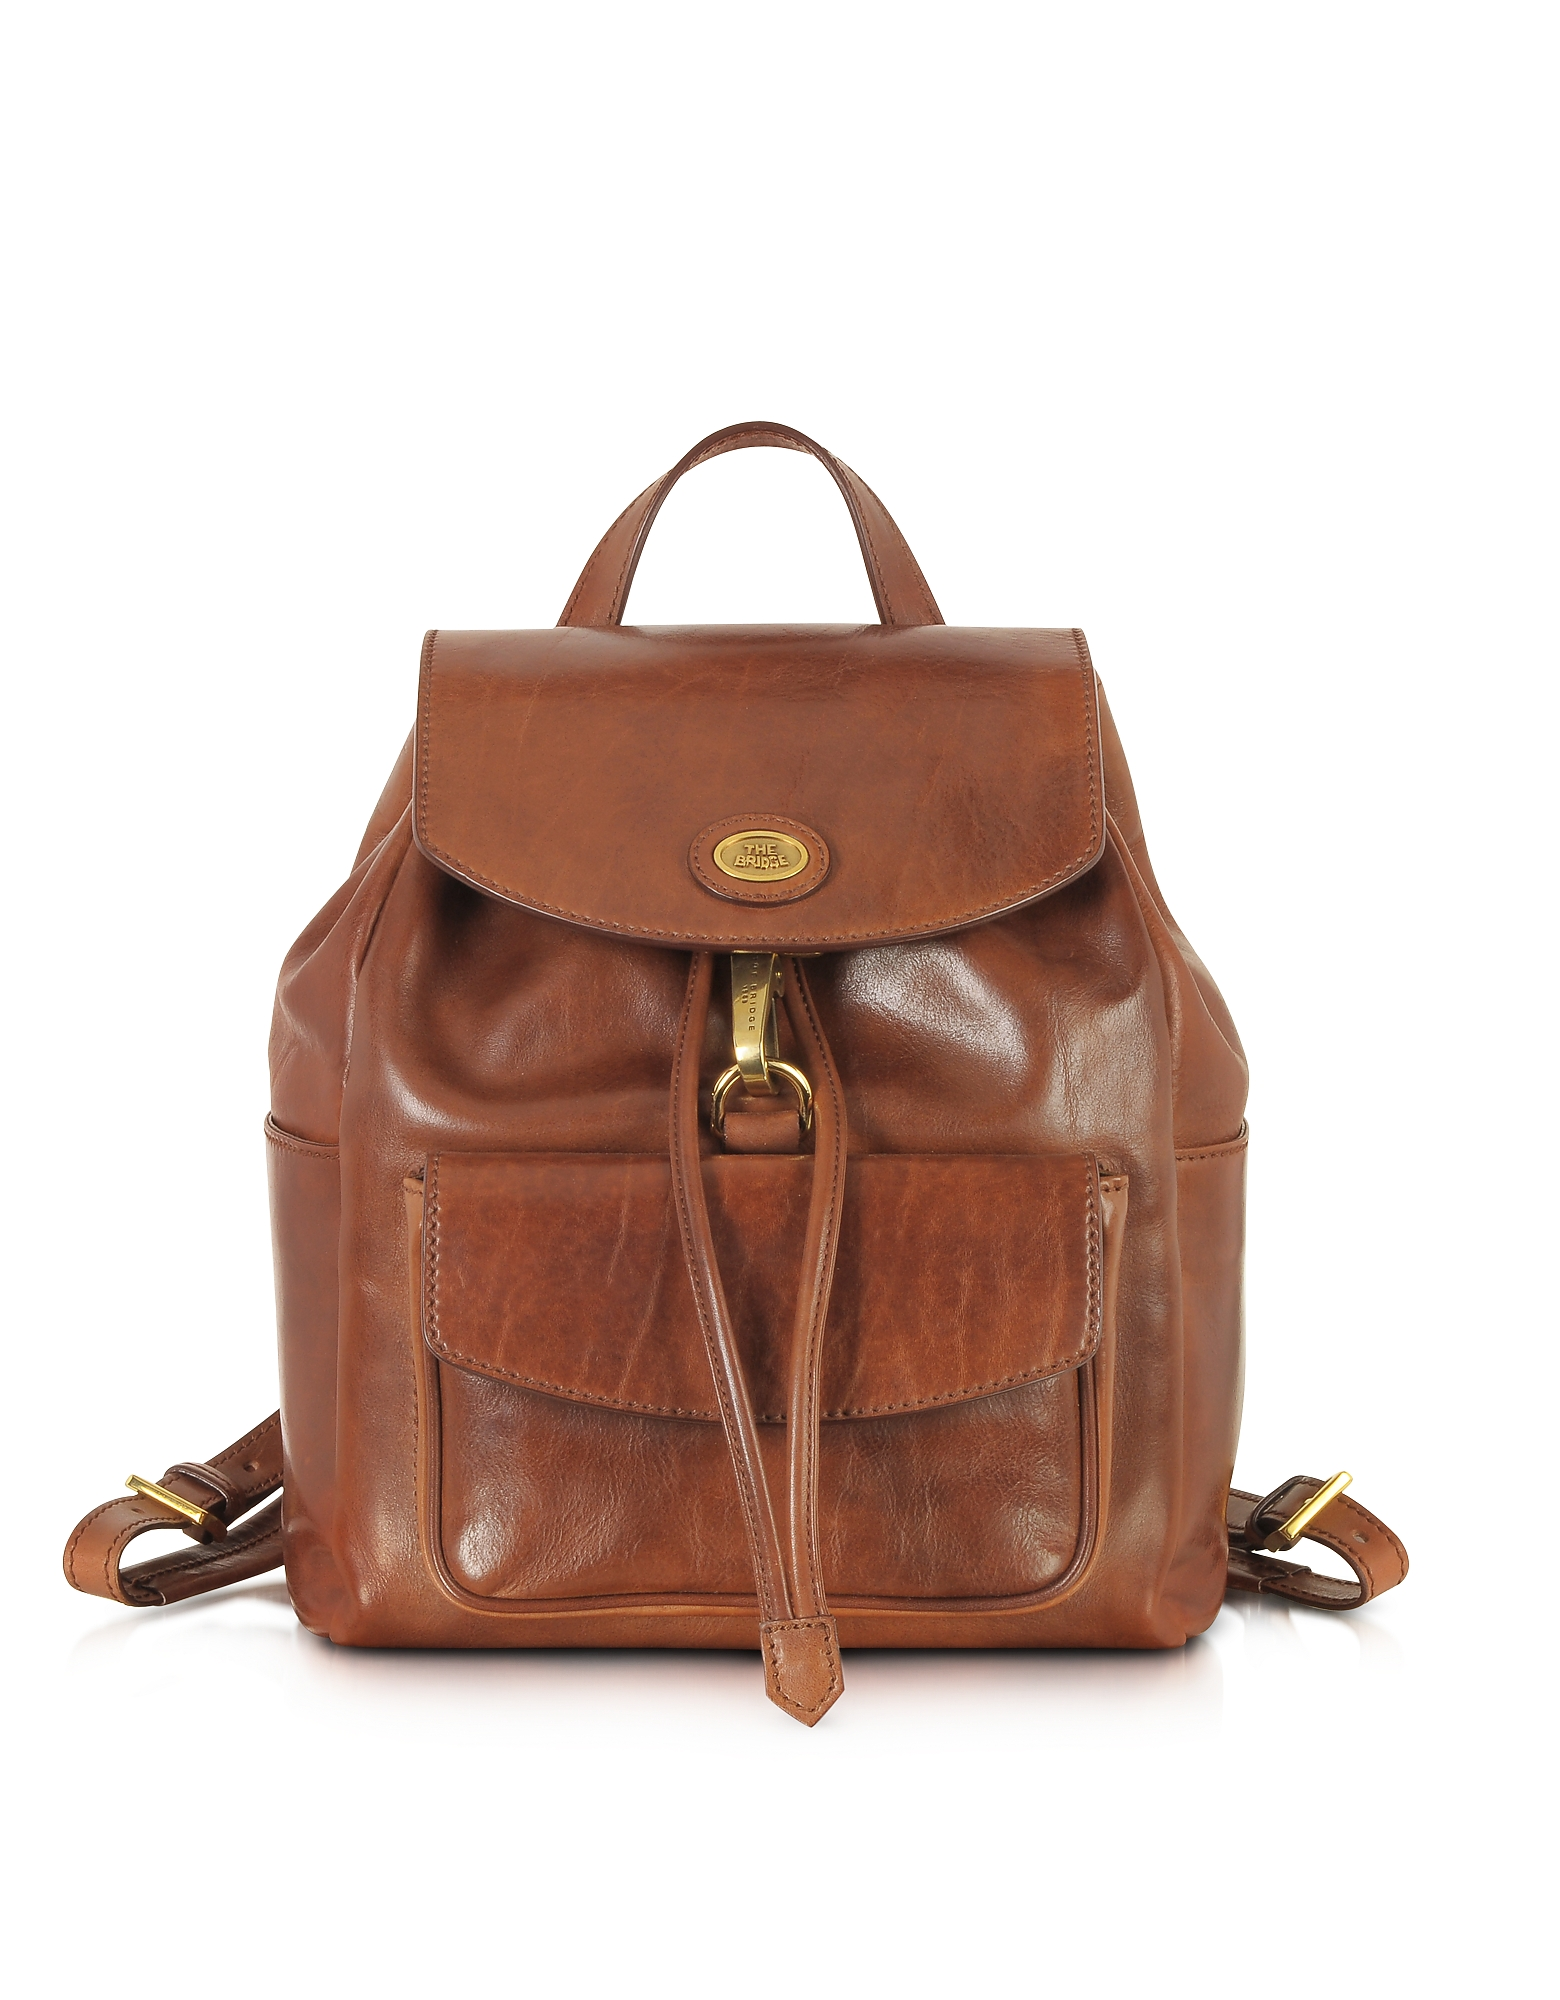 The Bridge Handbags, Story Donna Marrone Leather Backpack